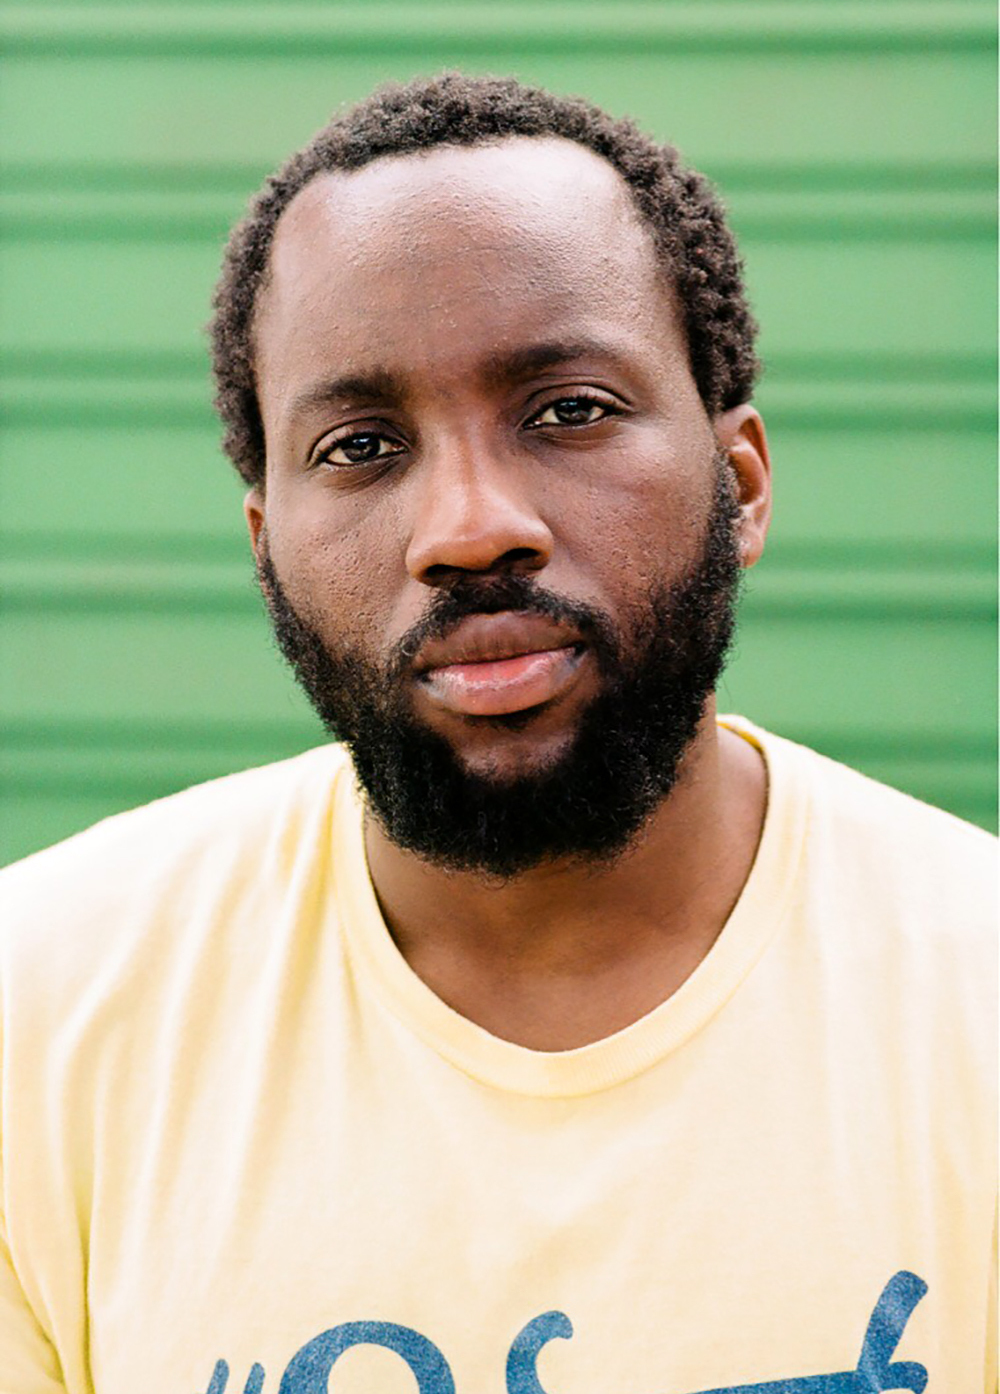 Nigerian chef and writer Tunde Wey conceived his food stall experiment as a way to get people thinking about the racial income and wealth gaps in America and how it affects their own lives.